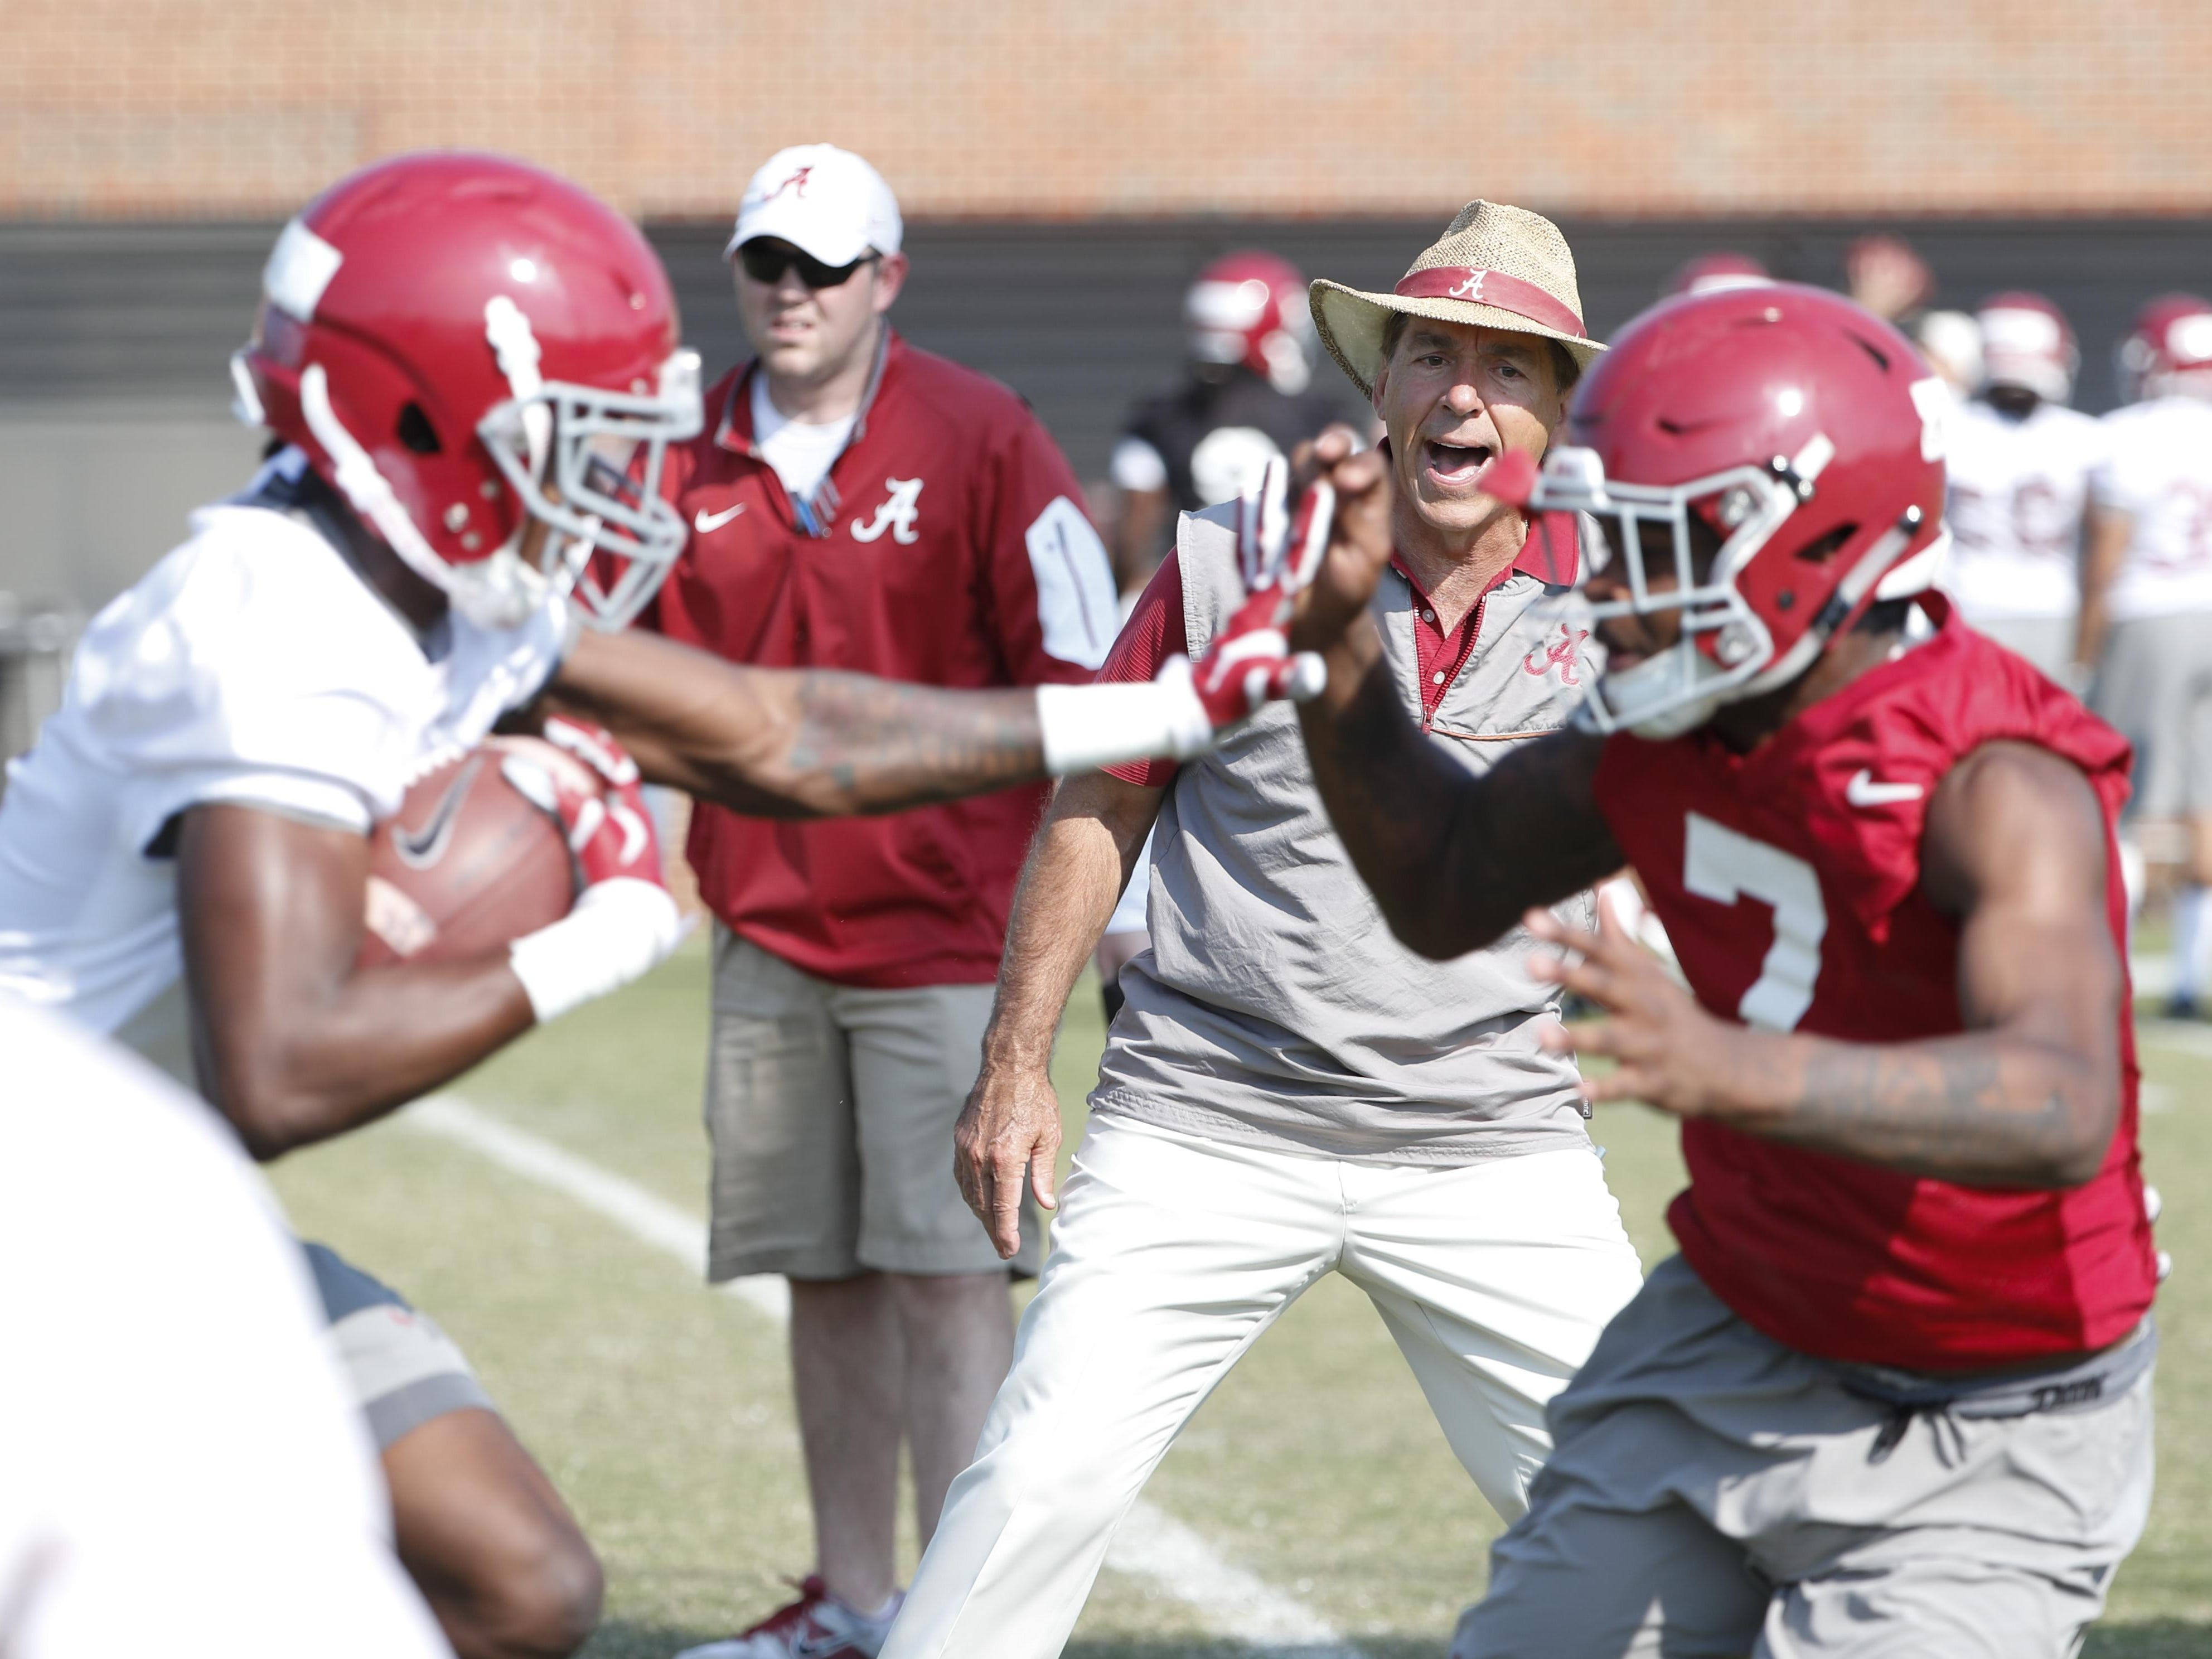 Alabama coach Nick Saban and the Crimson Tide go through their second spring practice Thursday.